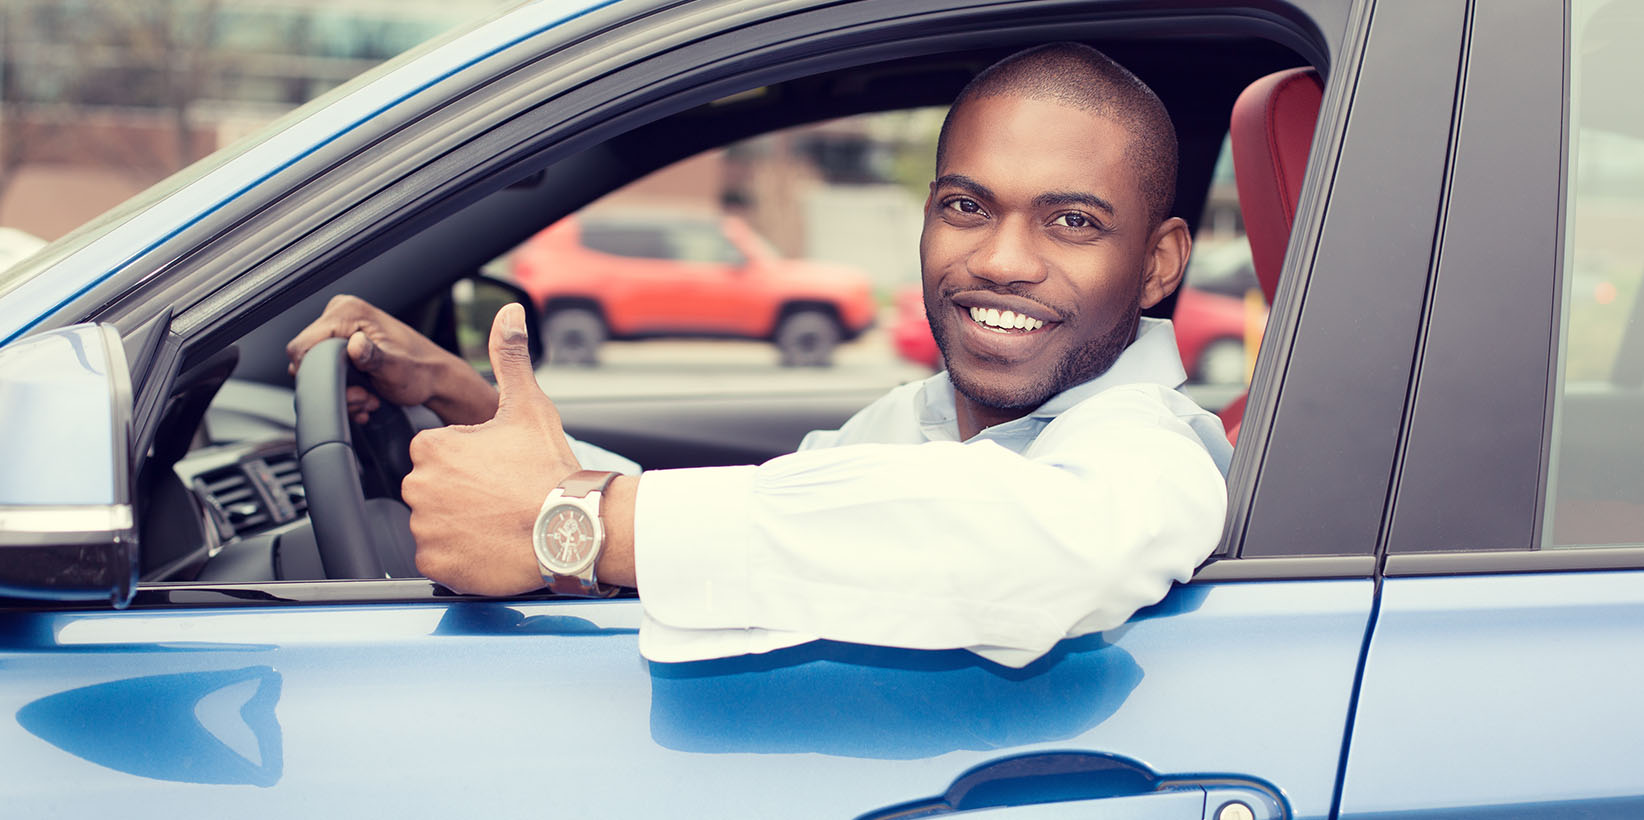 inside-headers-Loans-Vehicle-Auto-Lease-Program